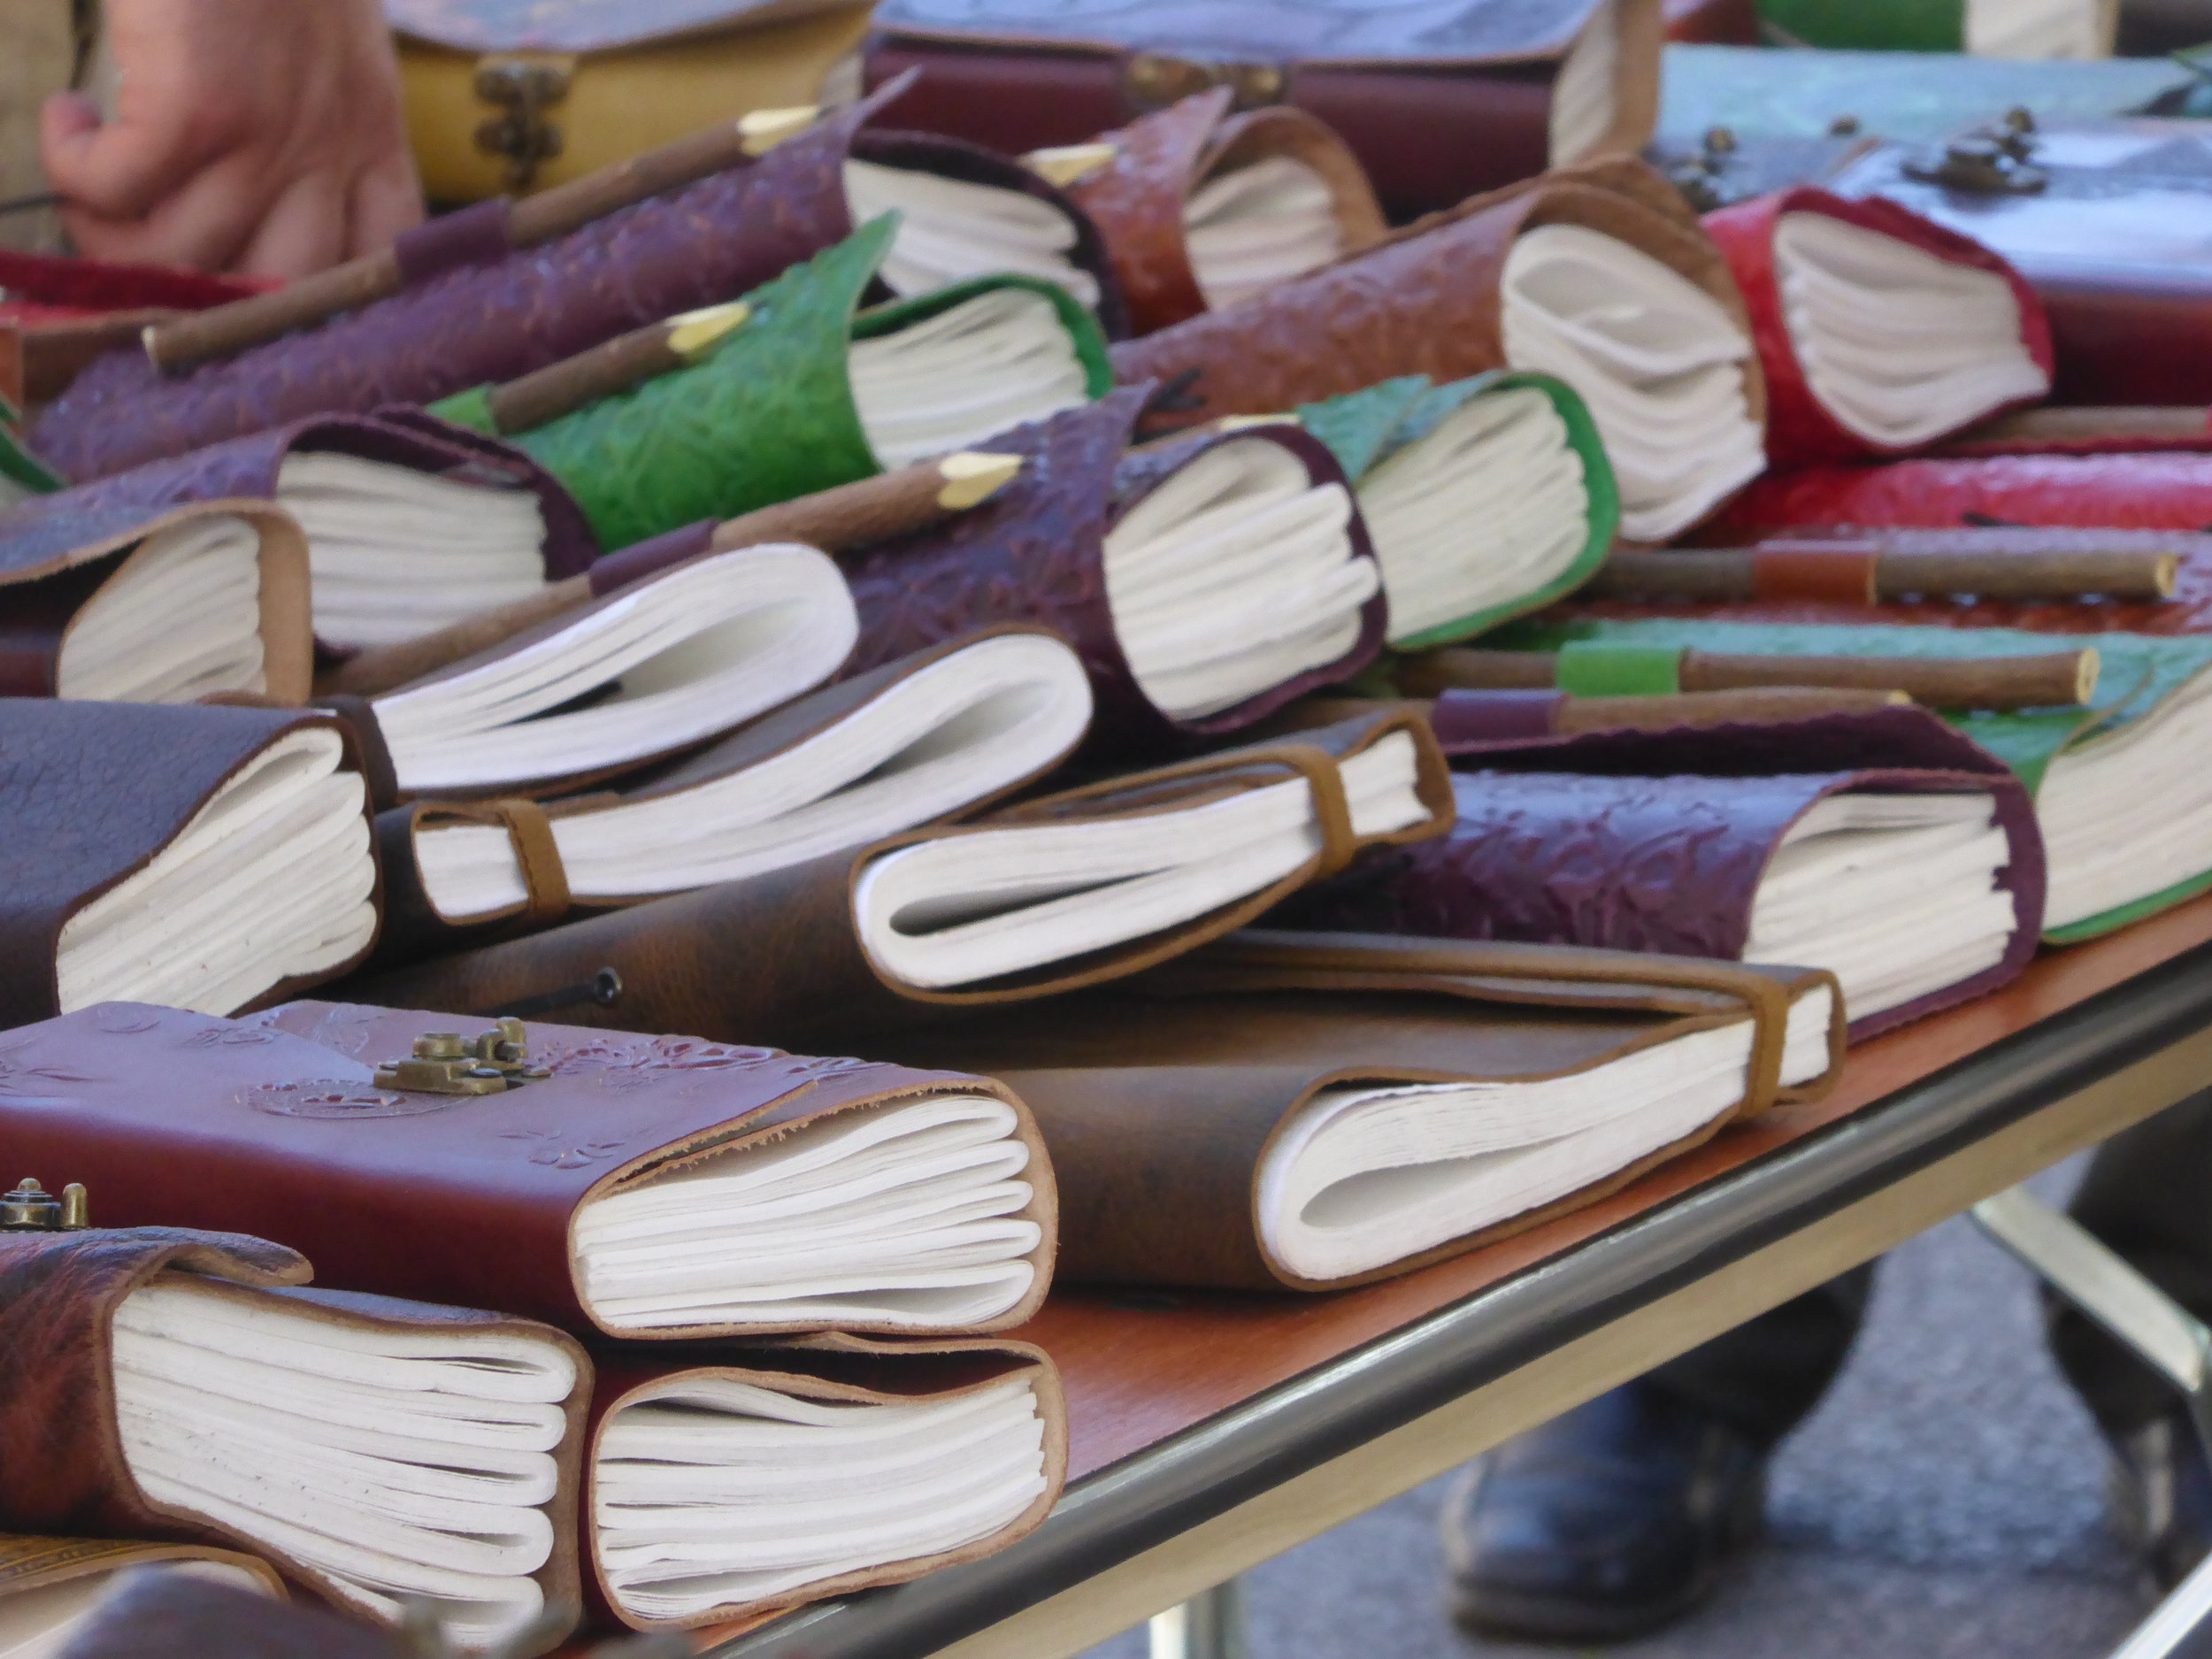 Leather-bound journals waiting to be filled. Printers Row Lit Fest in Chicago, 2017. Photo by Megy Karydes.